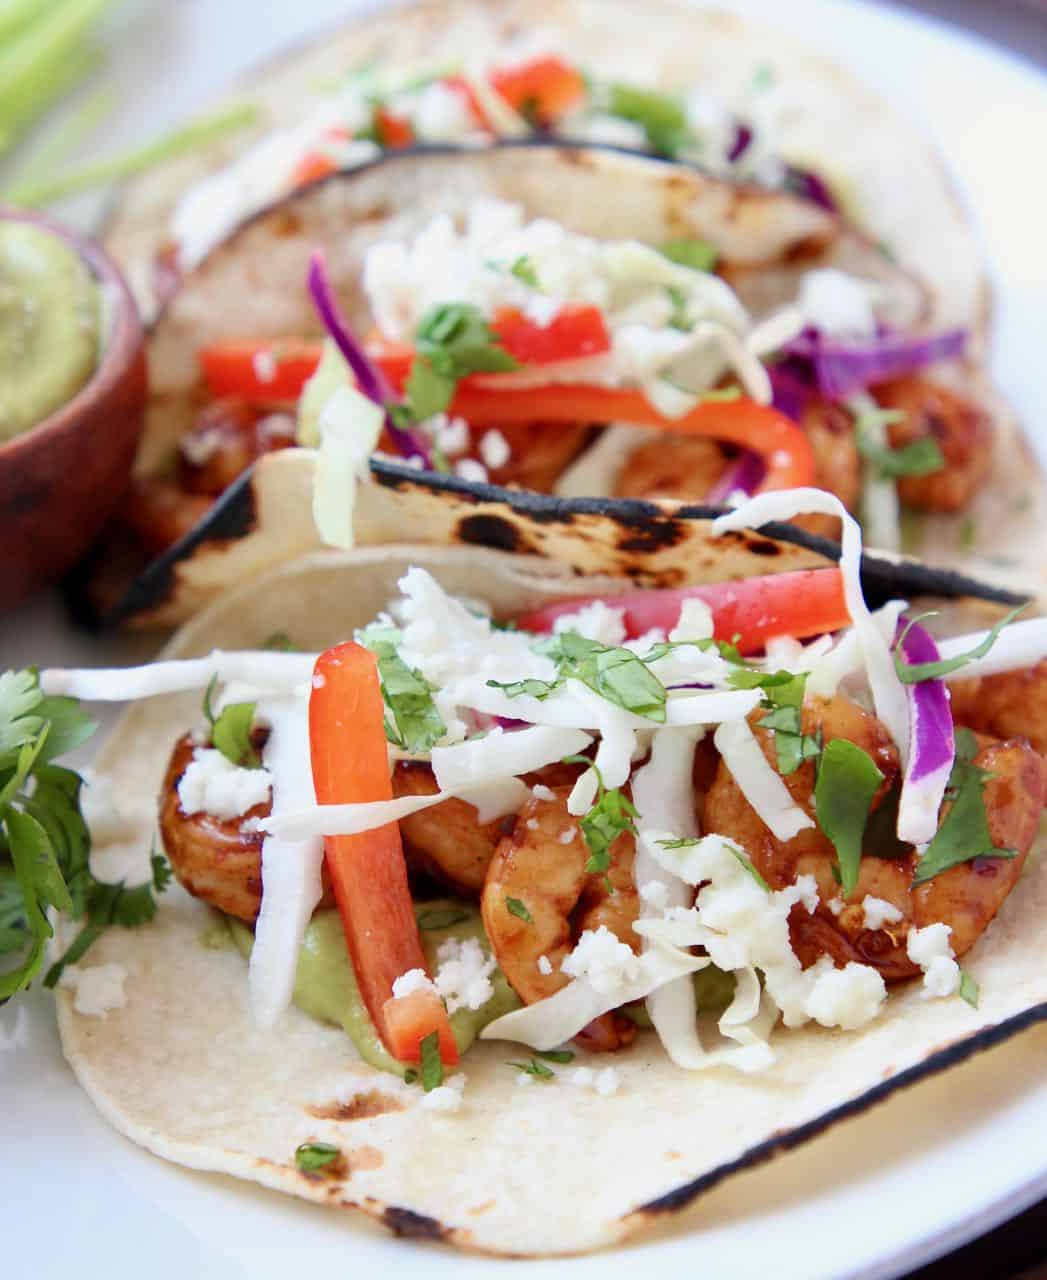 Grilled shrimp tacos, topped with slaw on white plate